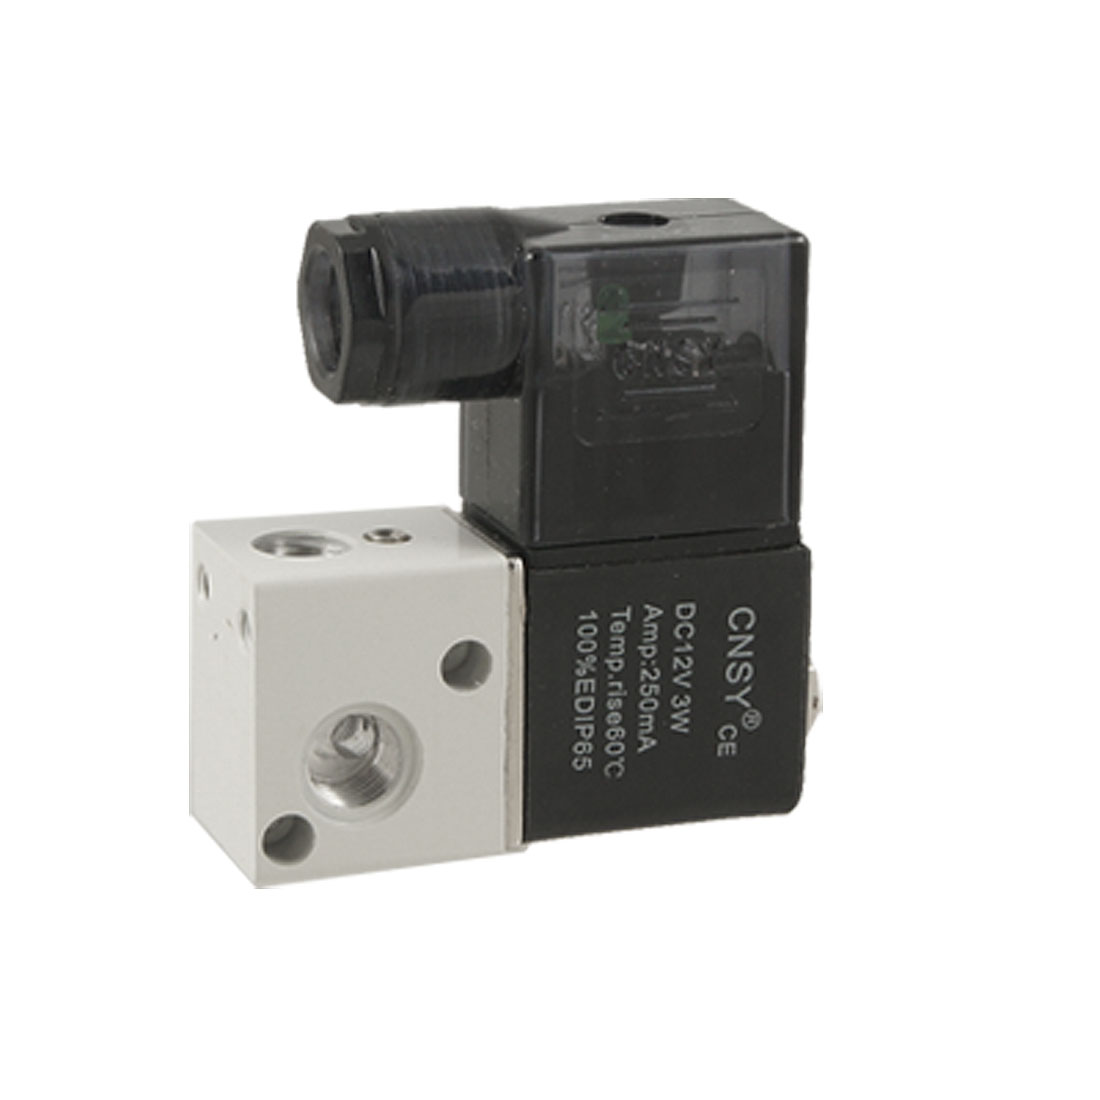 DC 12V 250mA 2 Position 3 Way Pneumatic Solenoid Valve